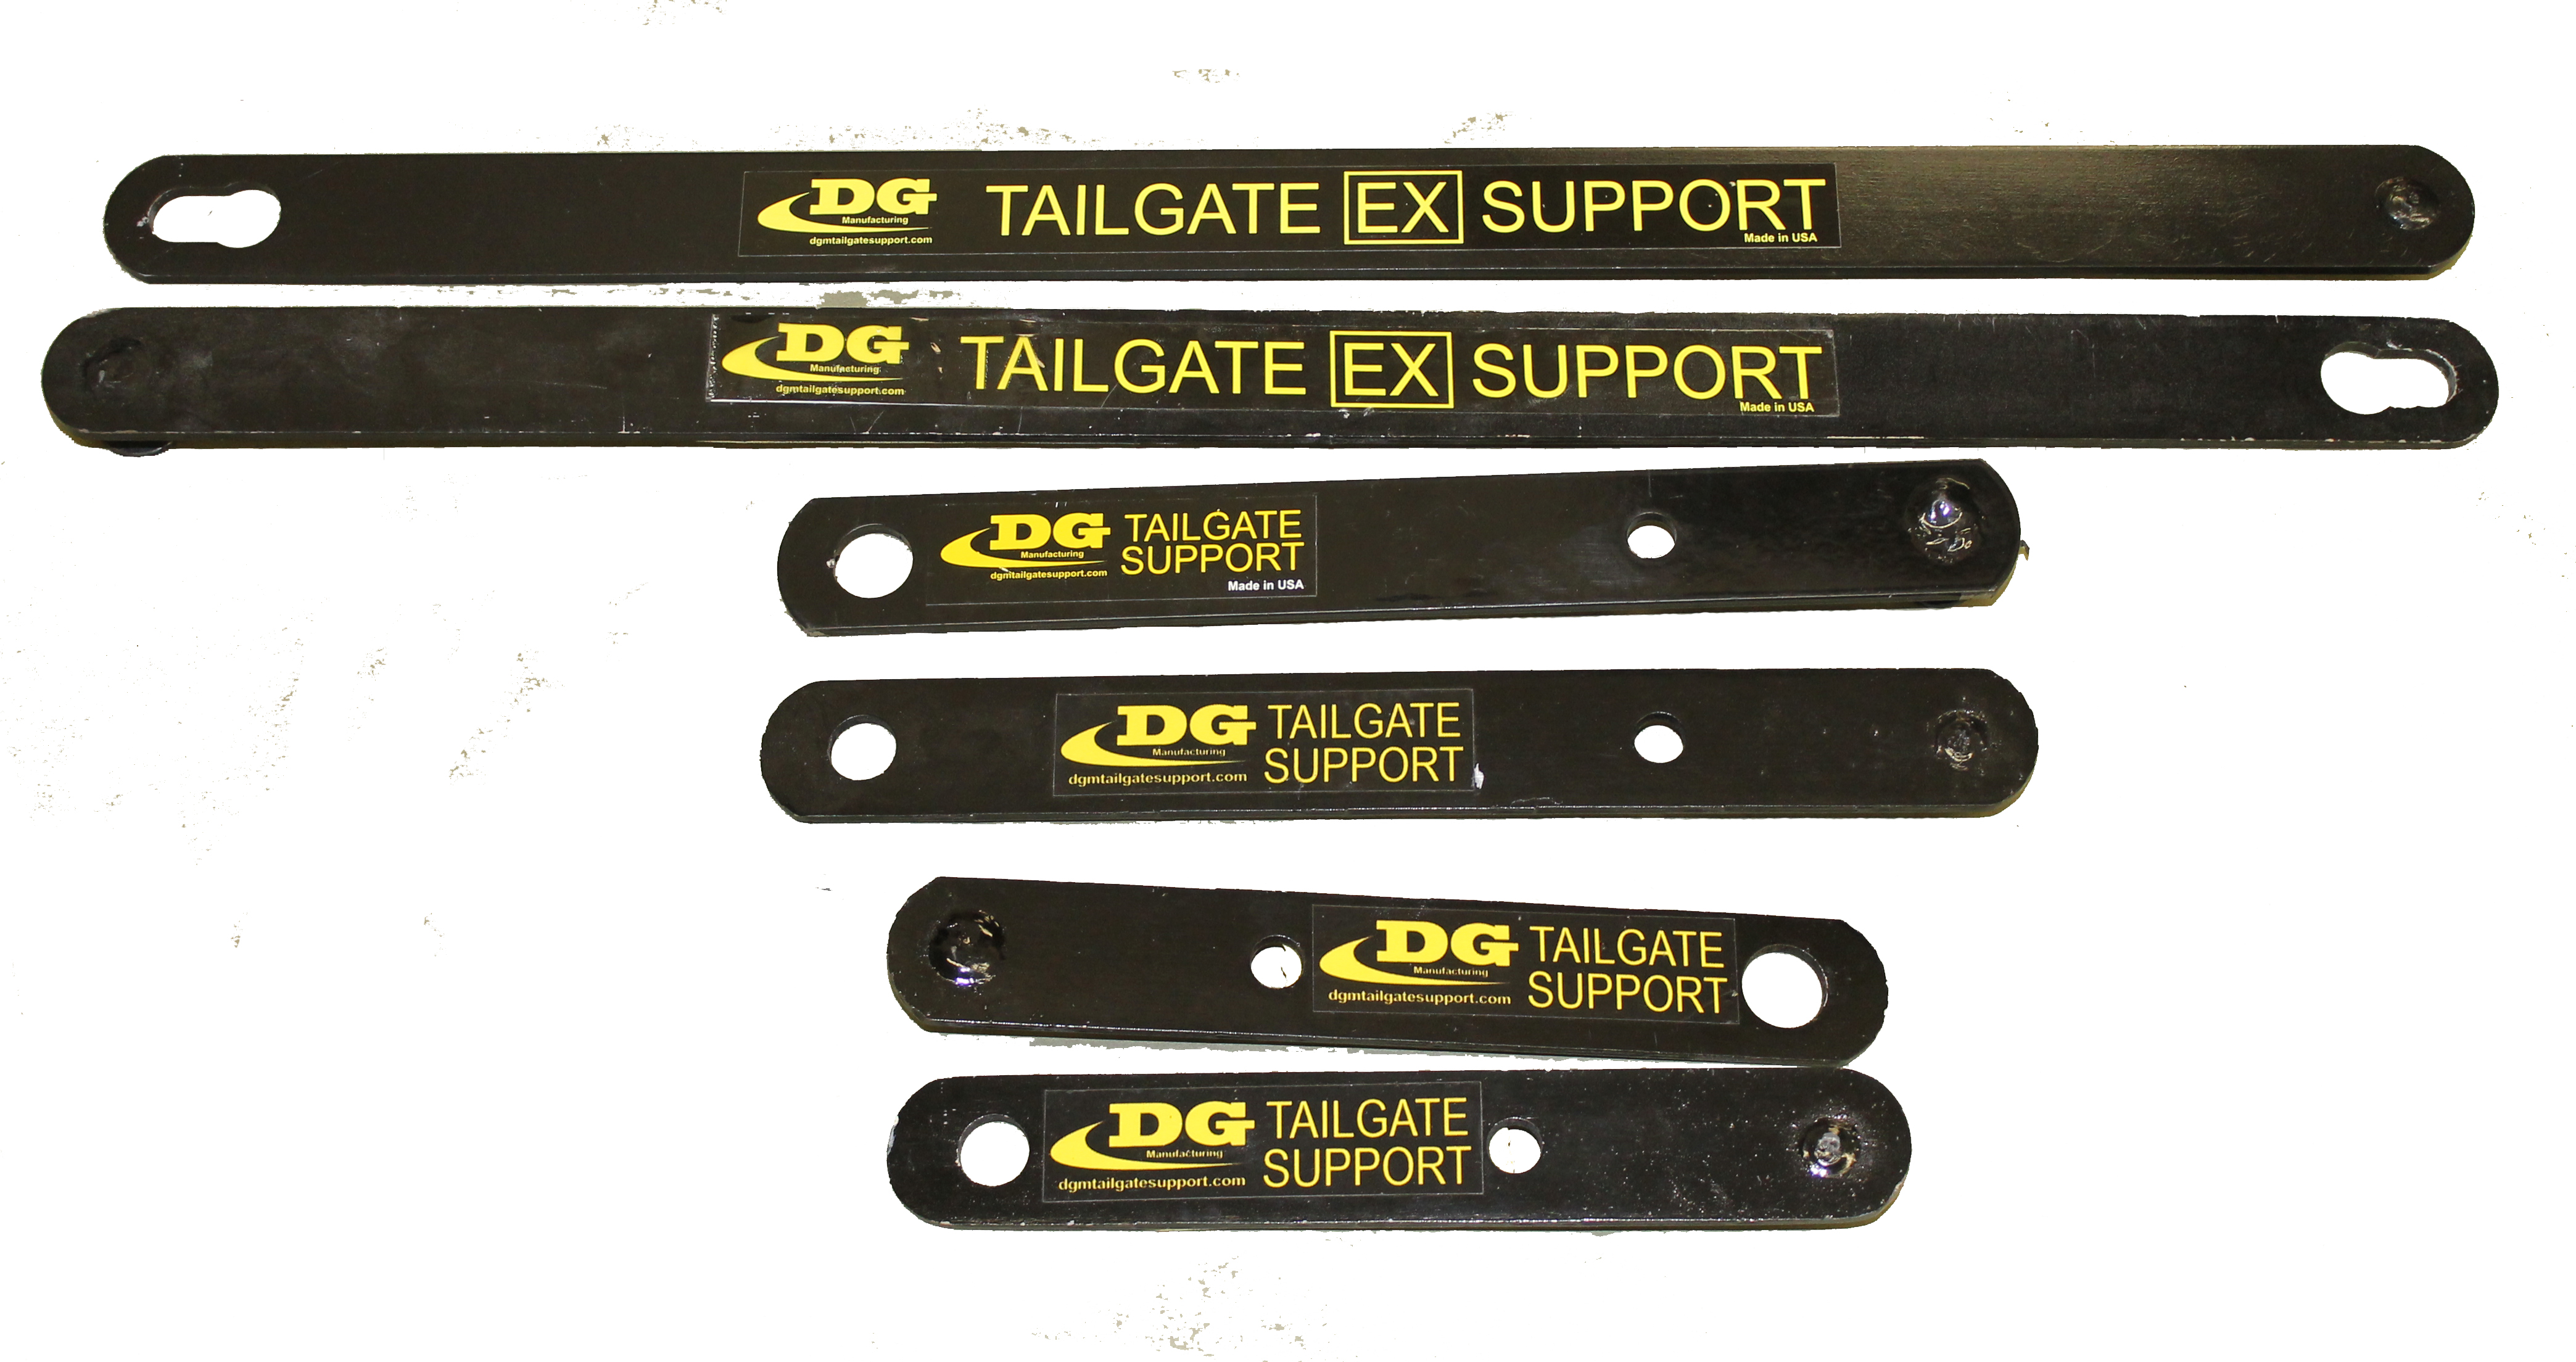 Tailgate Support All 3 Sizes Dg Manufacturing Tailgate